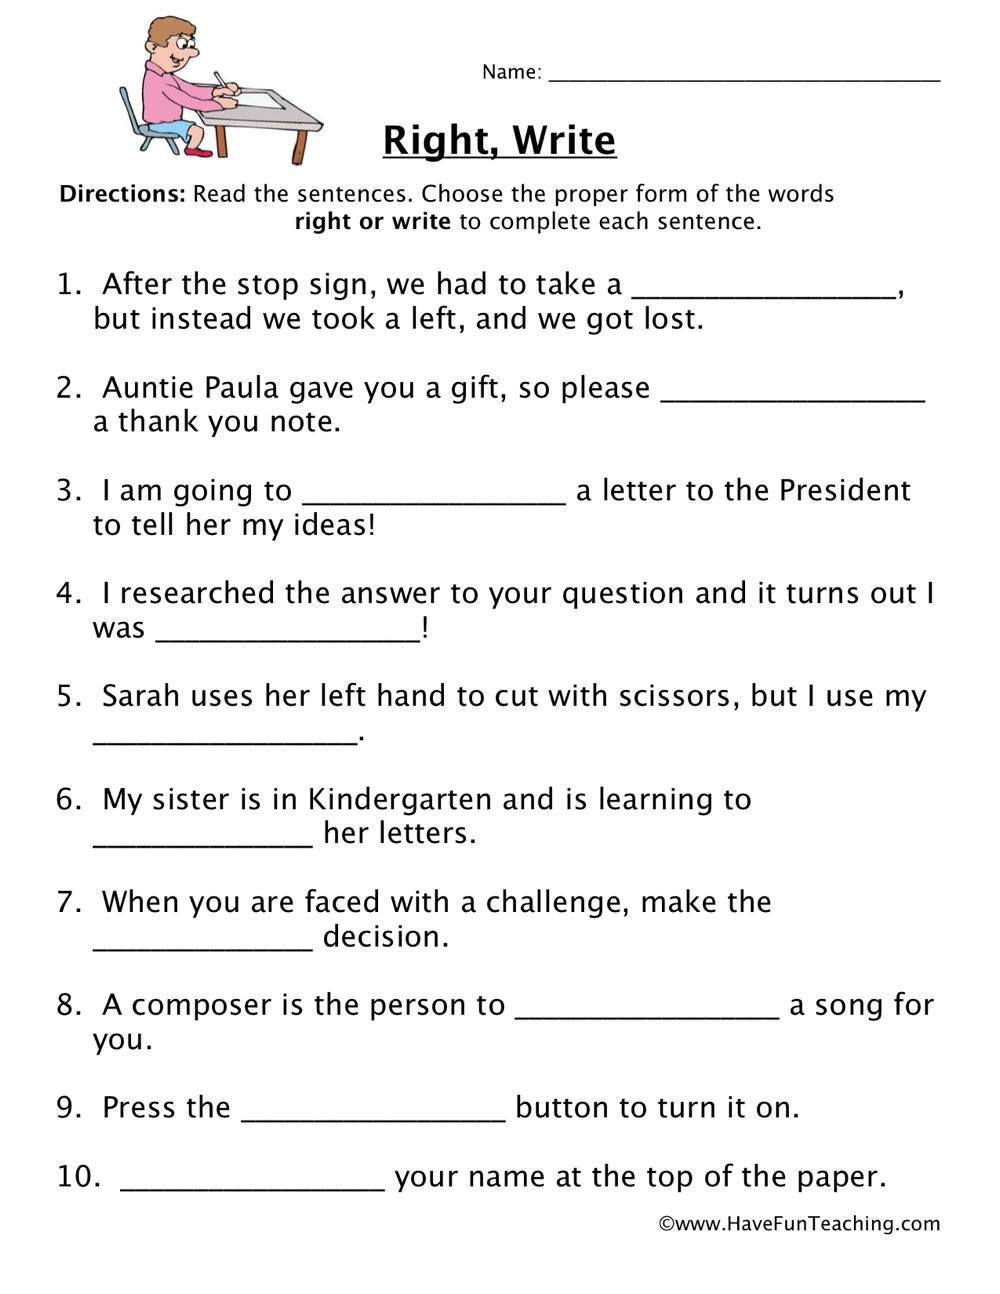 Homophones Worksheets 2nd Grade Right Write Homophones Worksheet